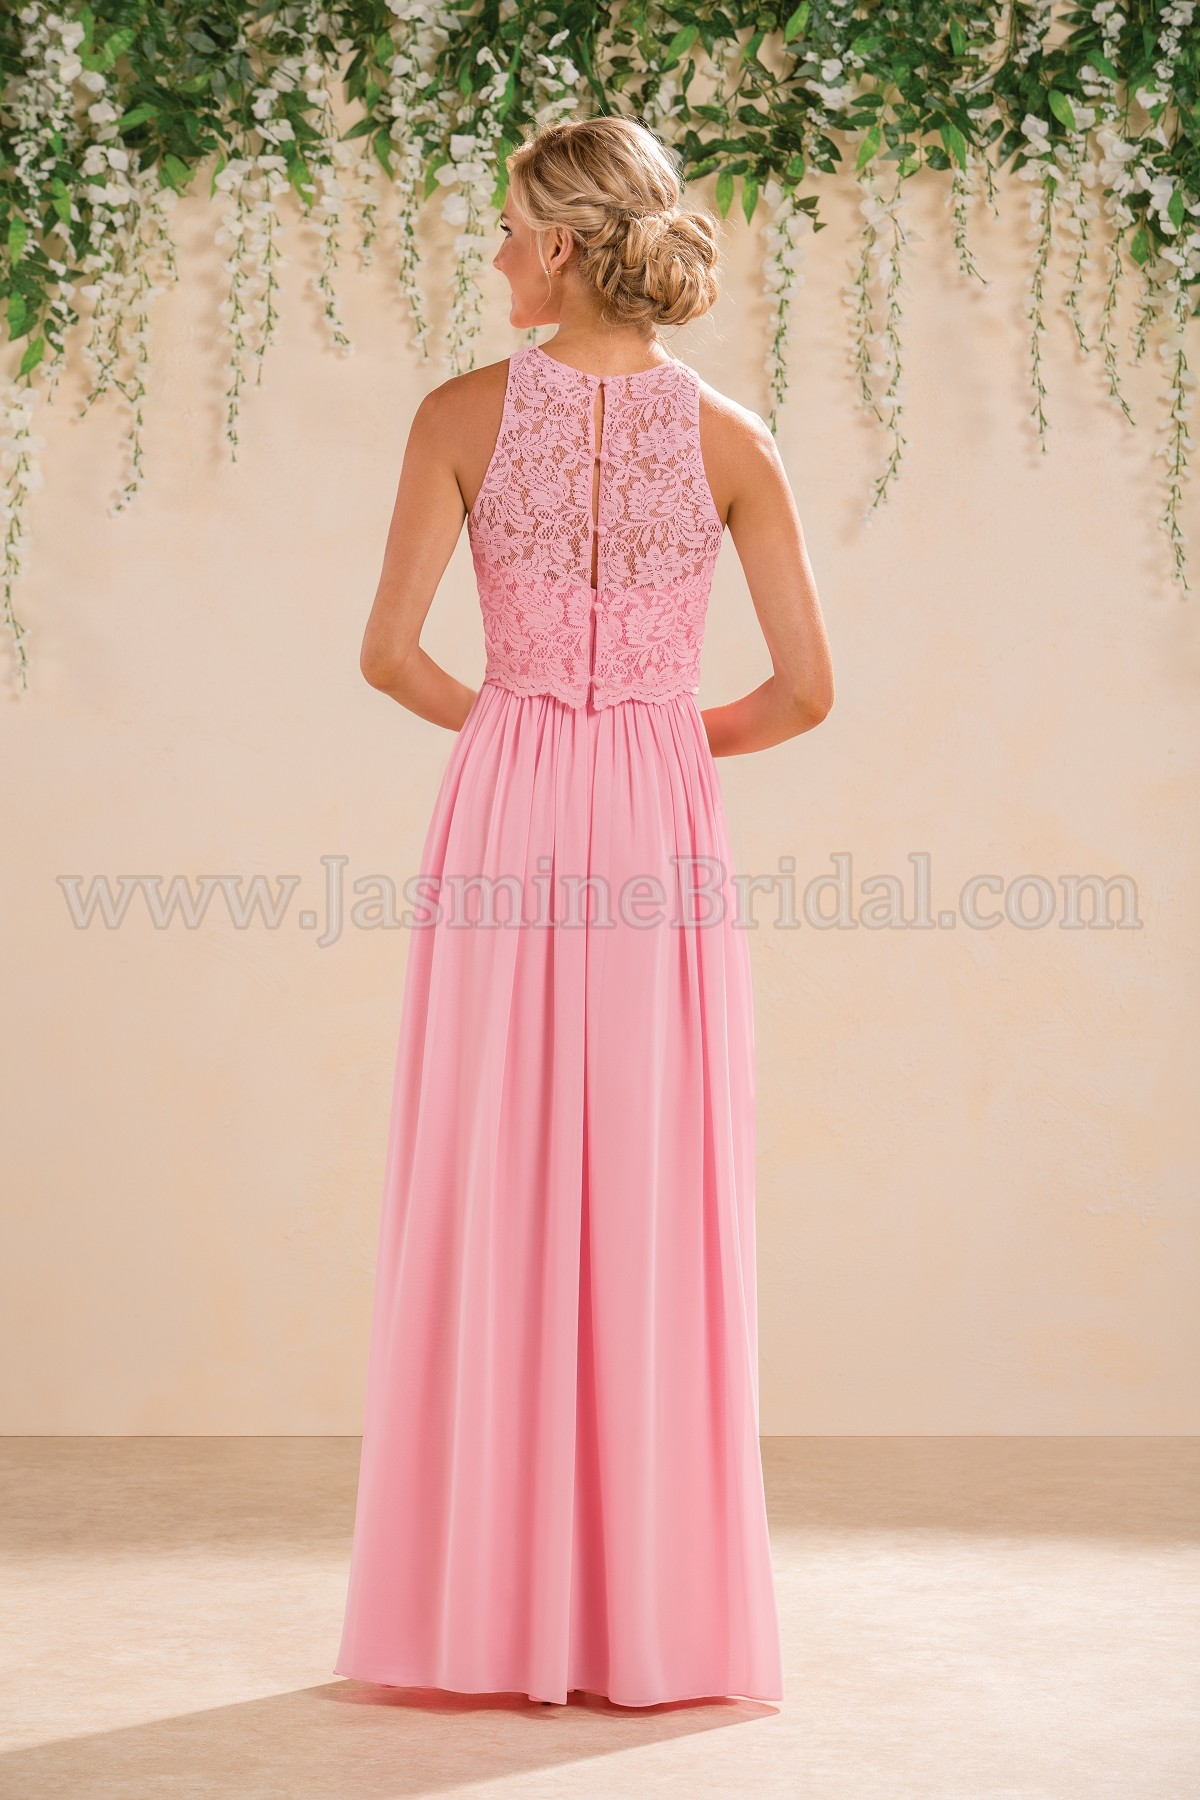 bridesmaid-dresses-B183017-B